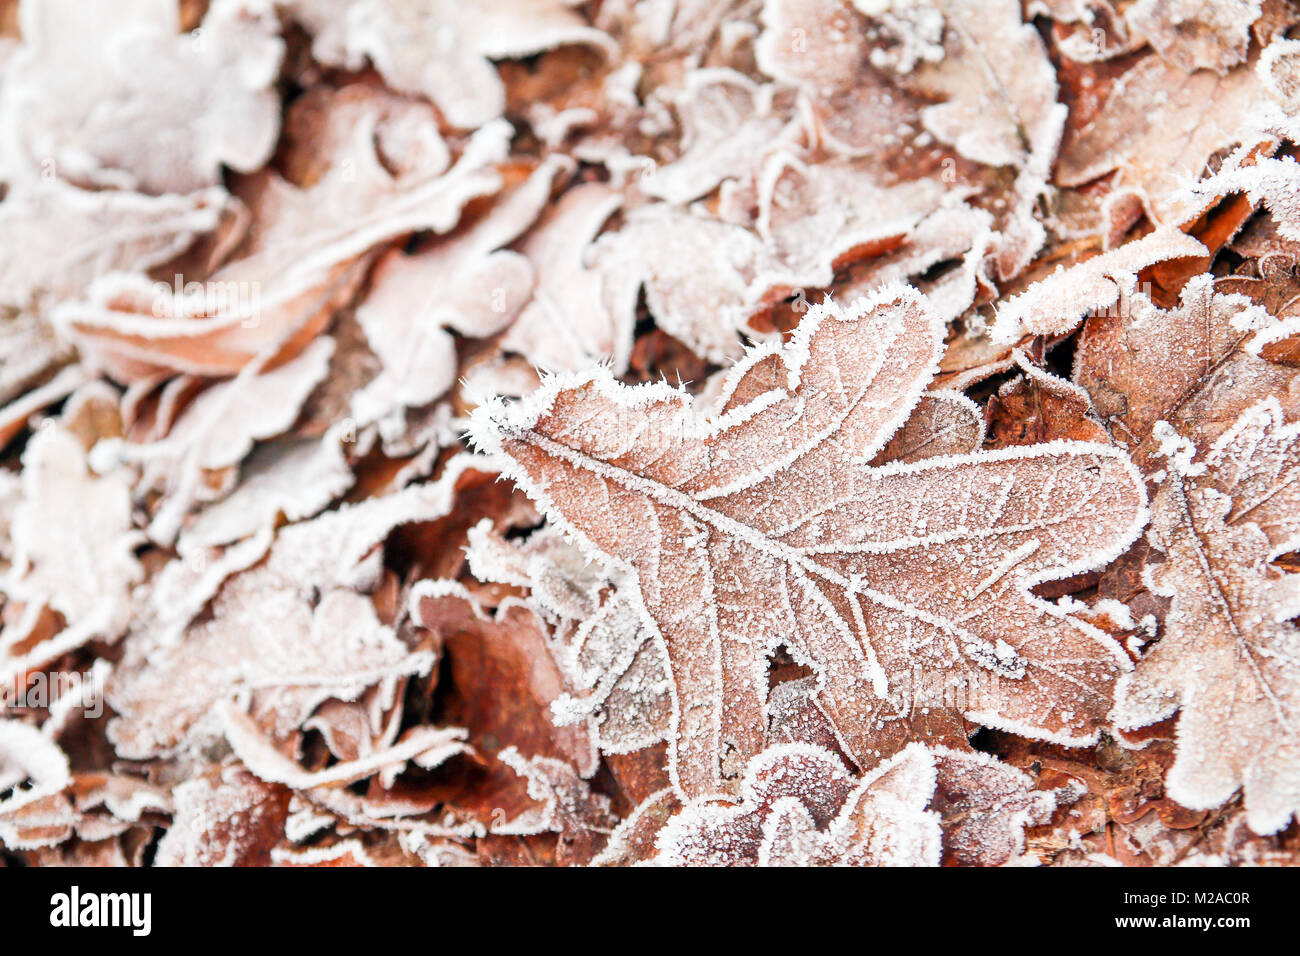 A detail picture of frozen oak leaf lying on the ground in the deciduous forest. - Stock Image